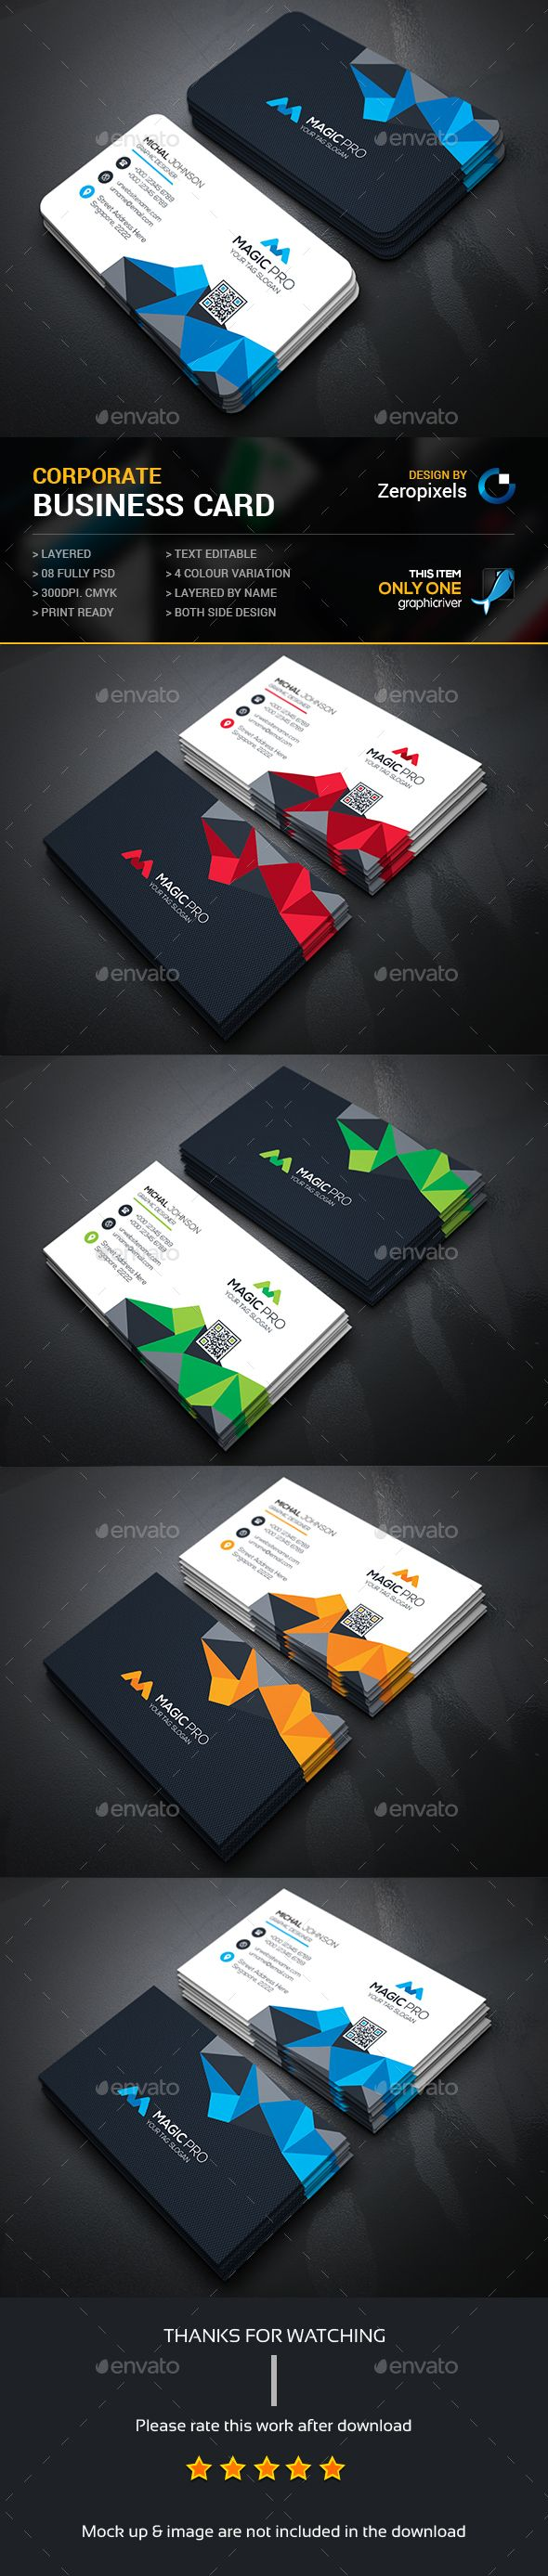 160 best business cards images on pinterest business card design buy abstract business card by zeropixels on graphicriver features easy customizable and editable business card in with bleed cmyk color design in 300 dpi reheart Image collections